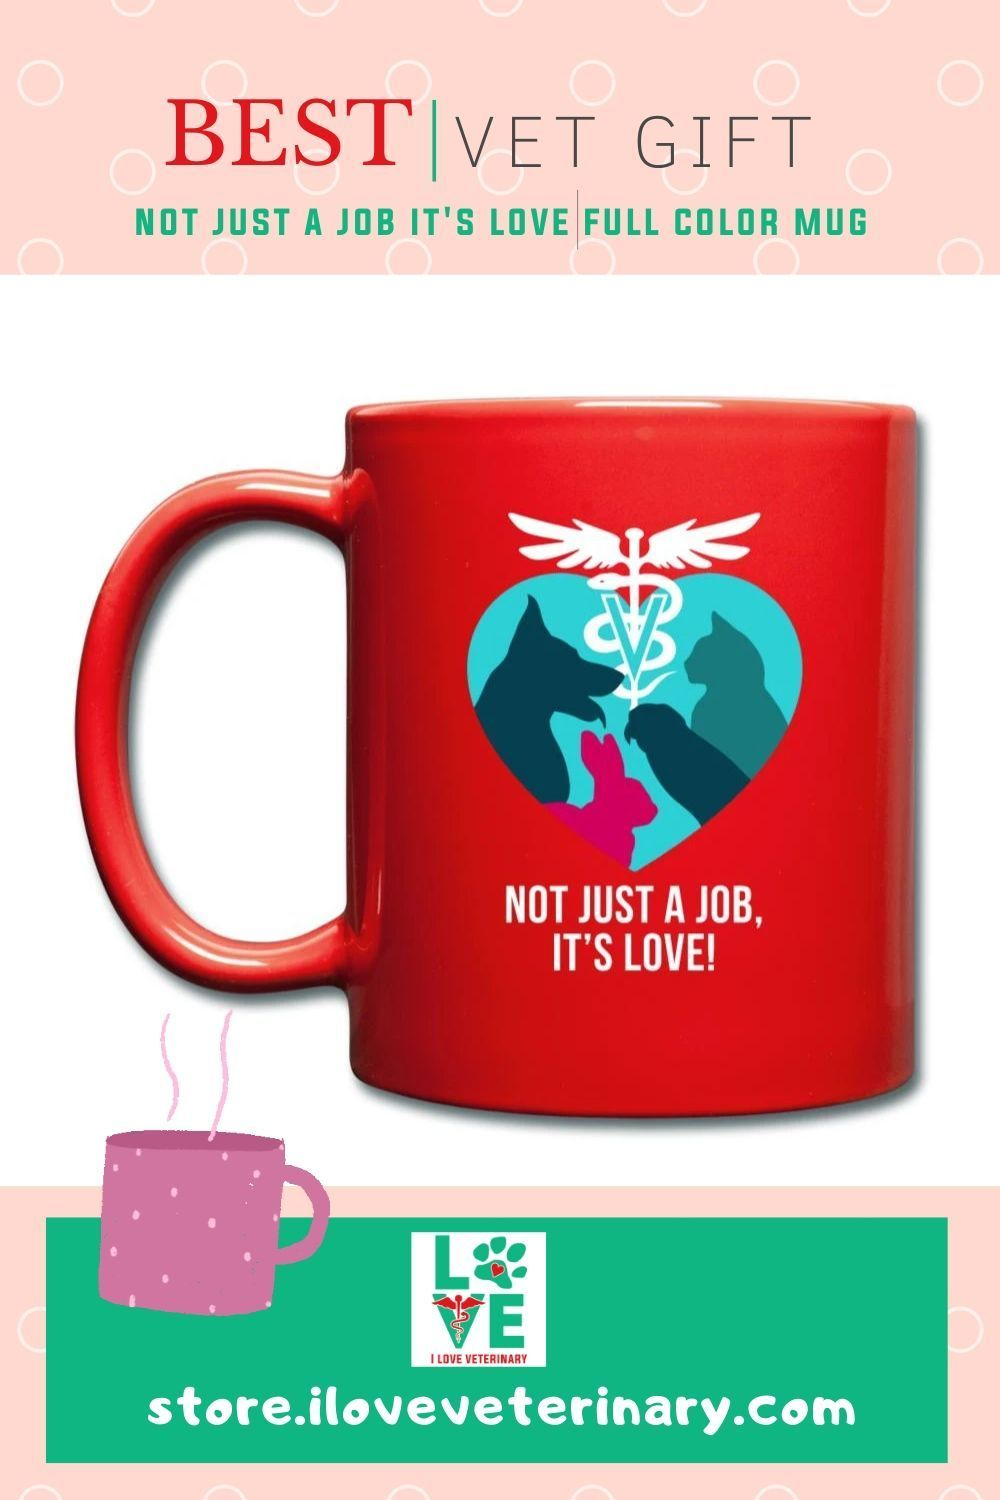 Not Just a job it's Love Full Color Mug in 2020 (With